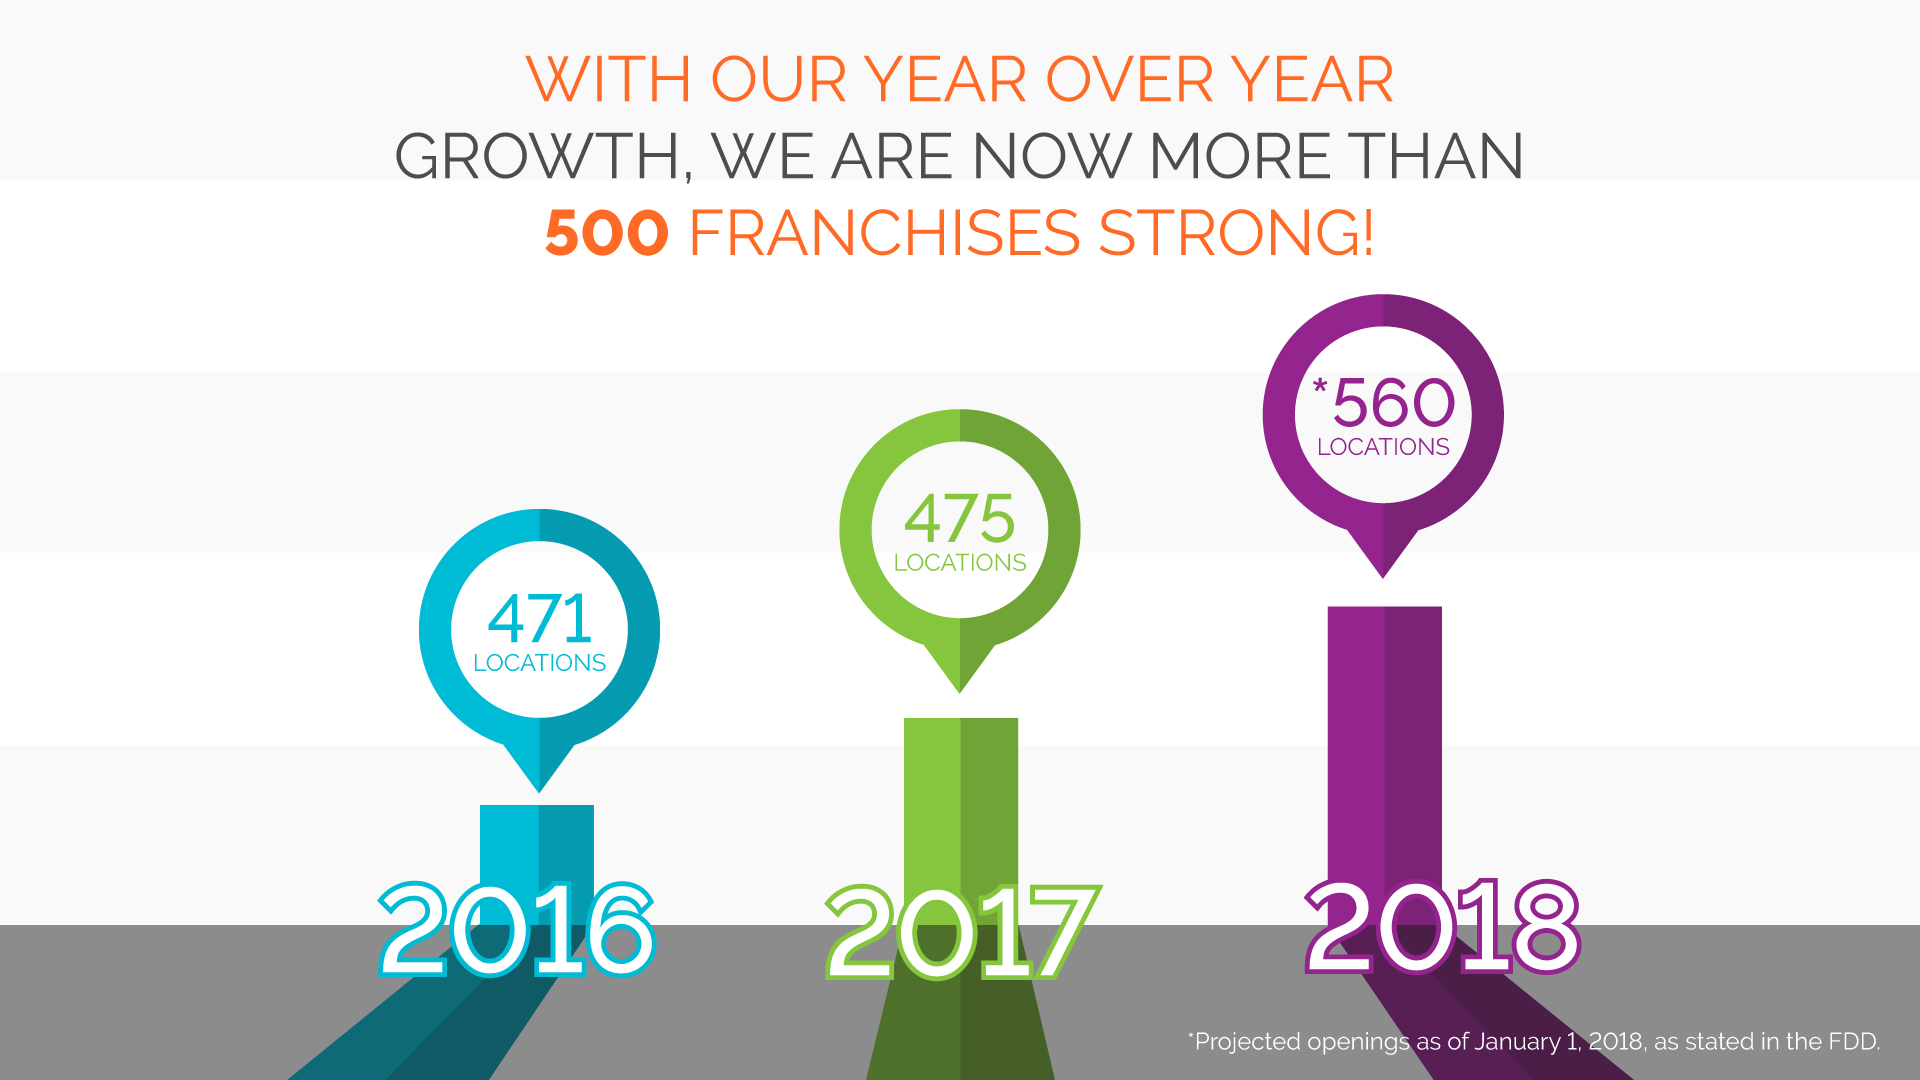 NHance franchise growth